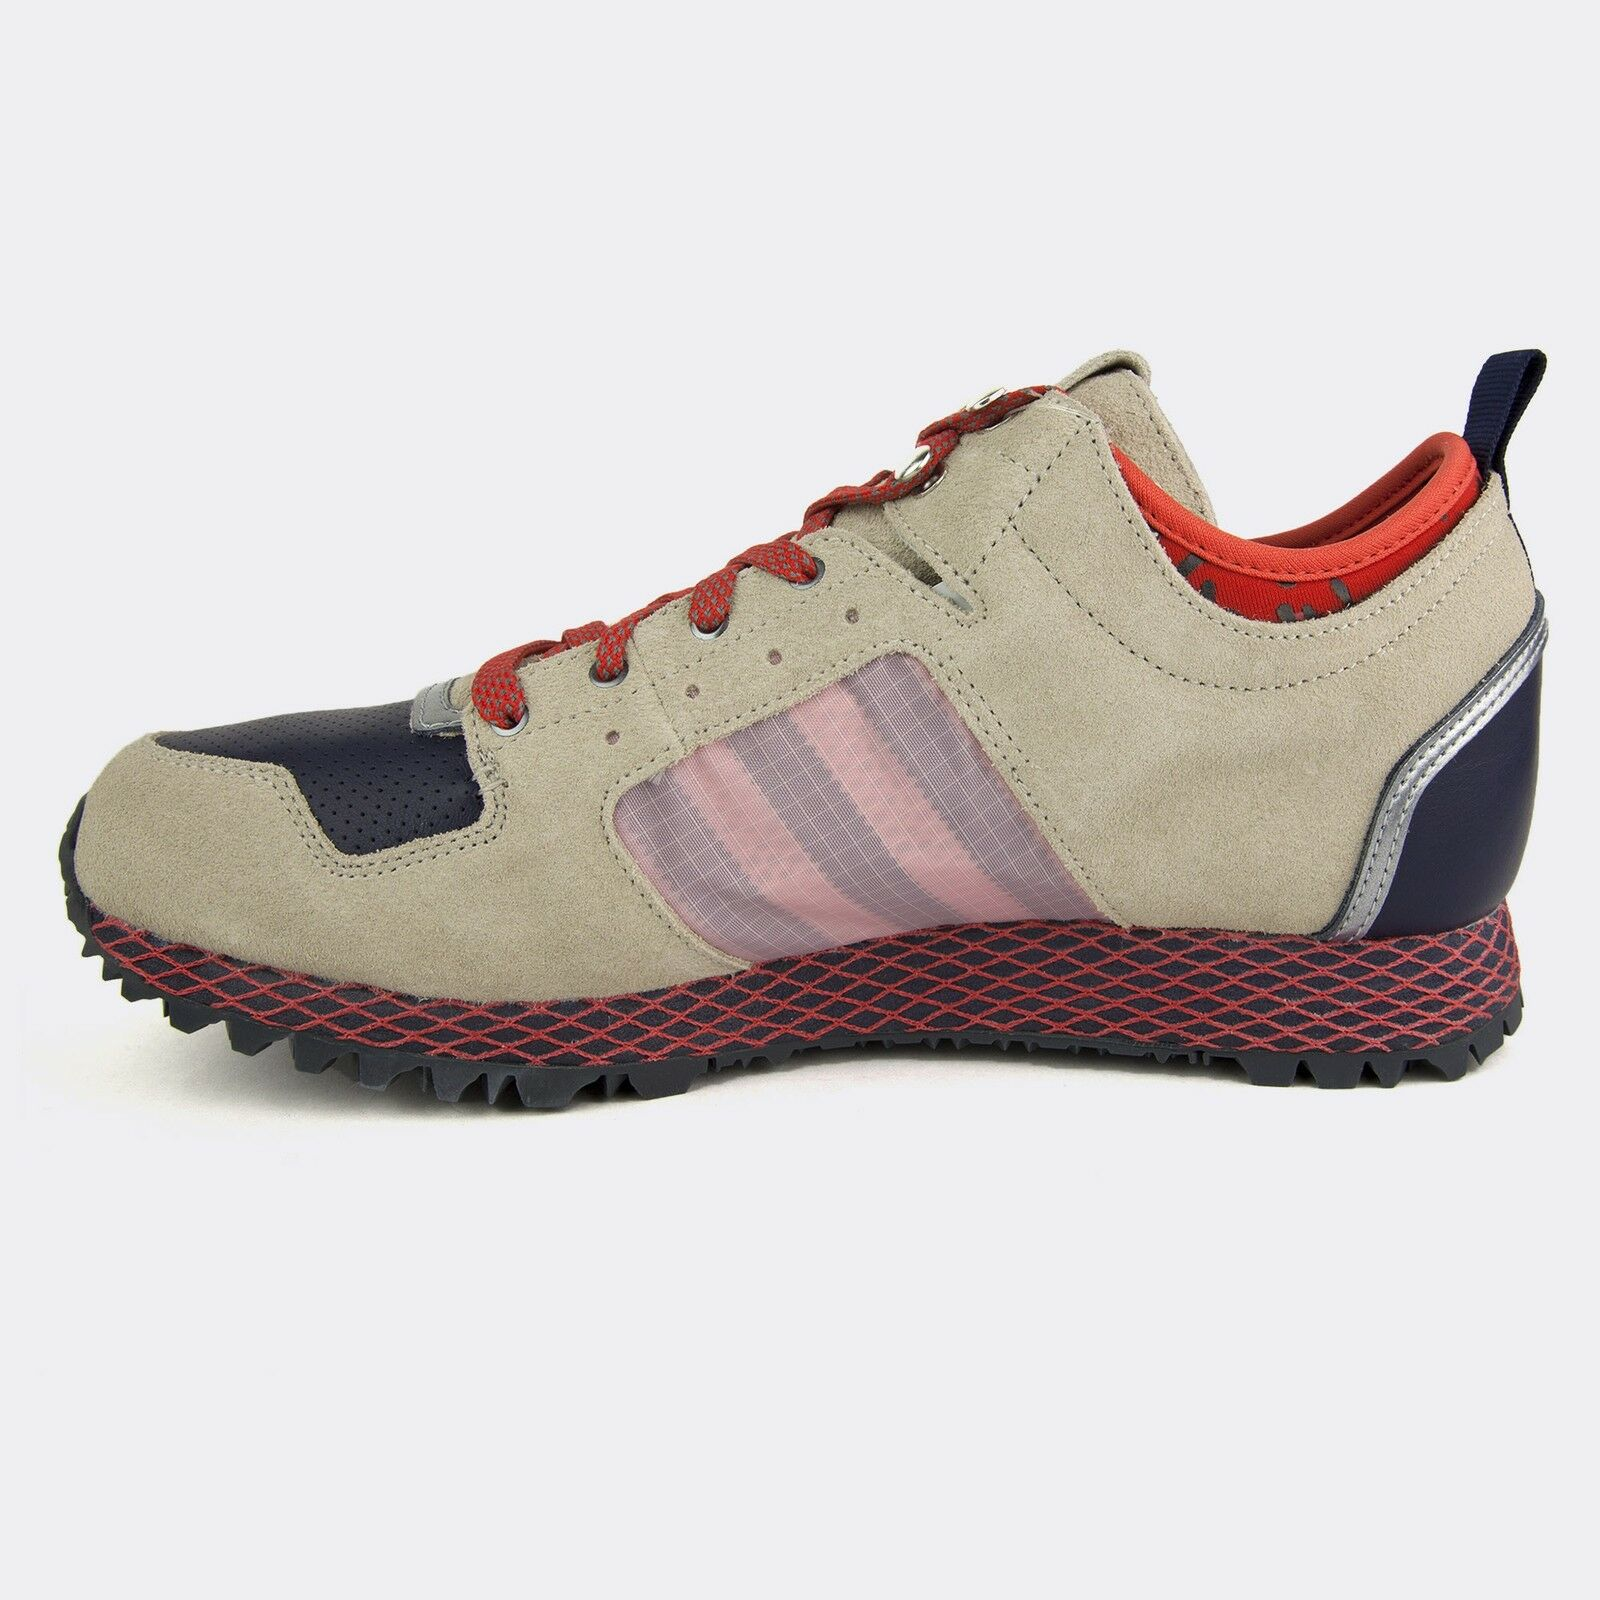 SPECIAL SPECIAL SPECIAL EDAdidas OPENING CEREMONY NEW YORK RUN OC 8000 zx 700 500 shoesMens 10 def674